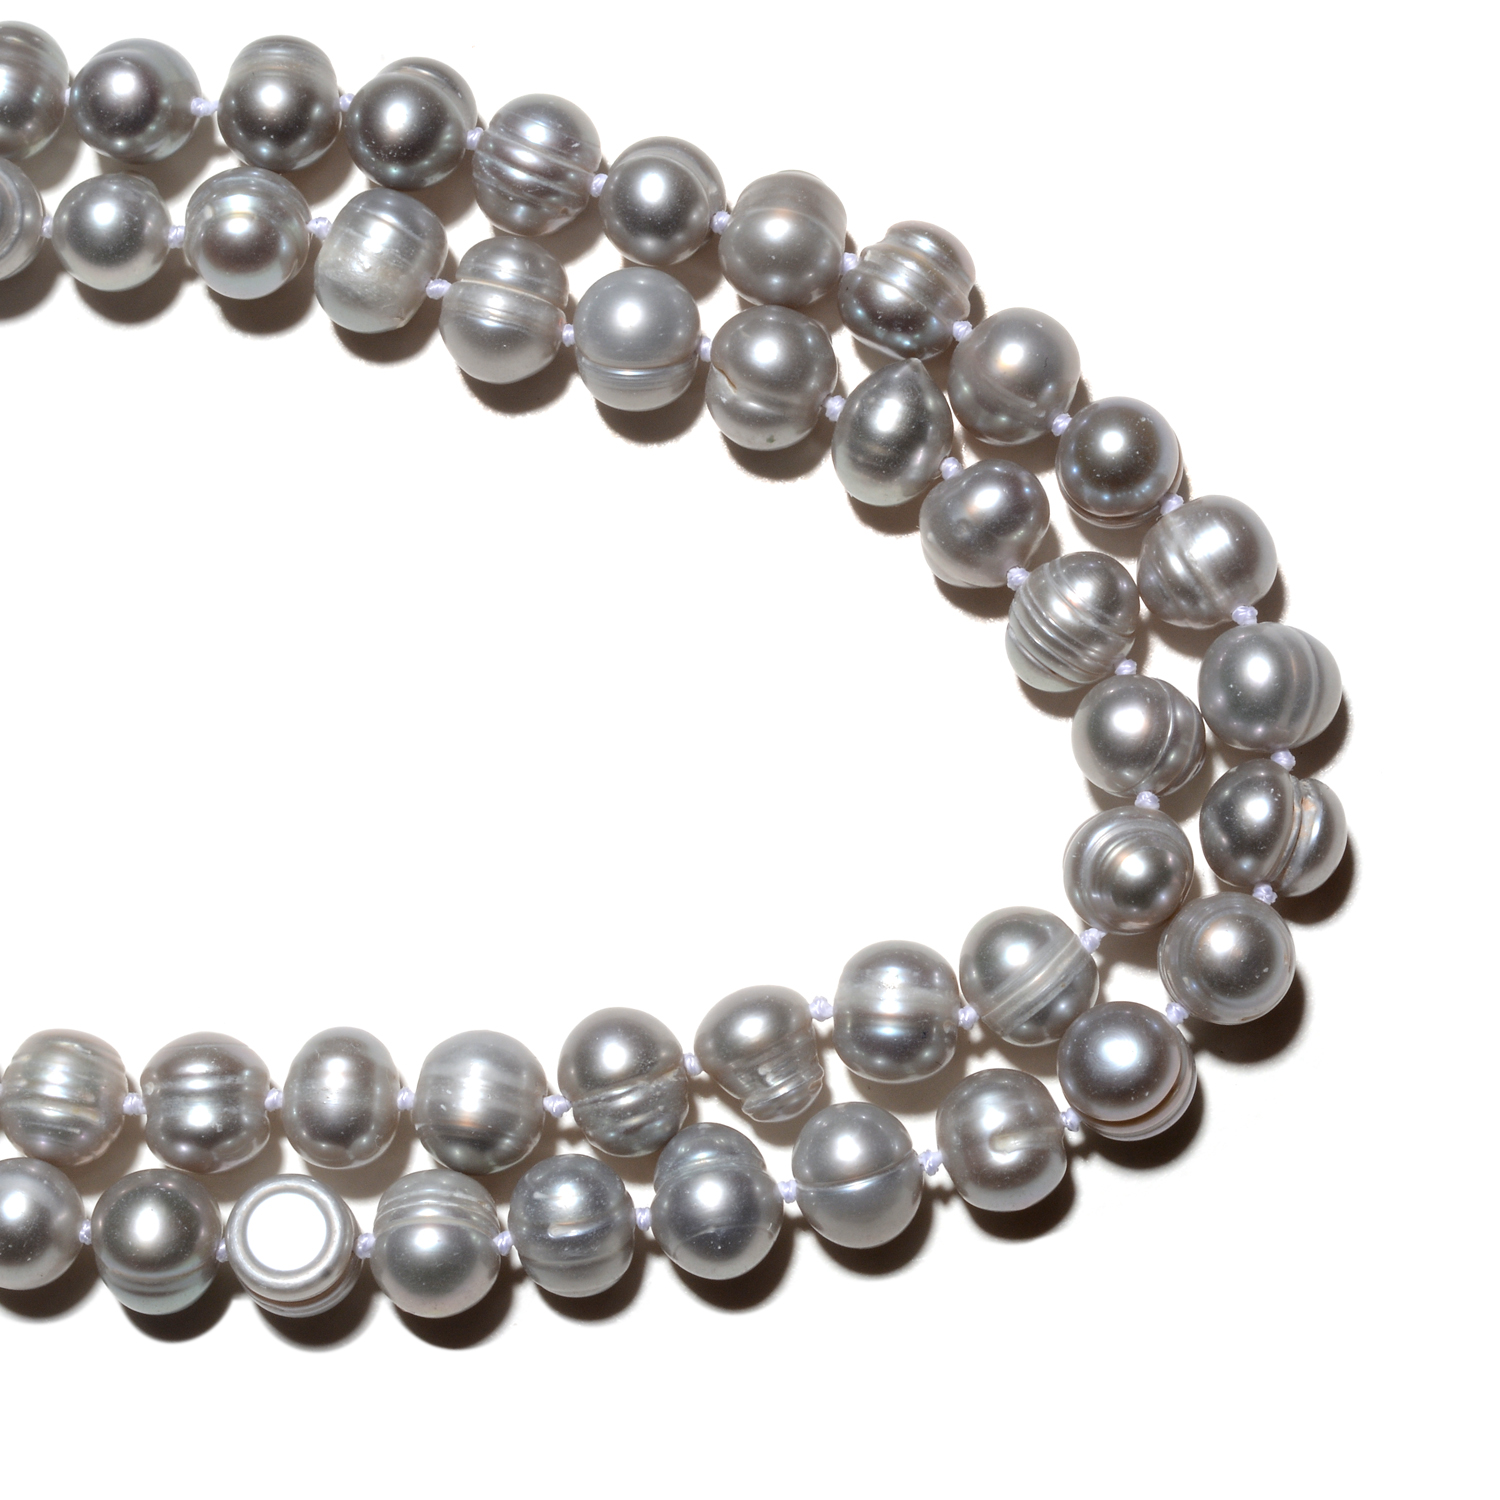 Beaded Necklaces, the Original Accessory? | Shop LC